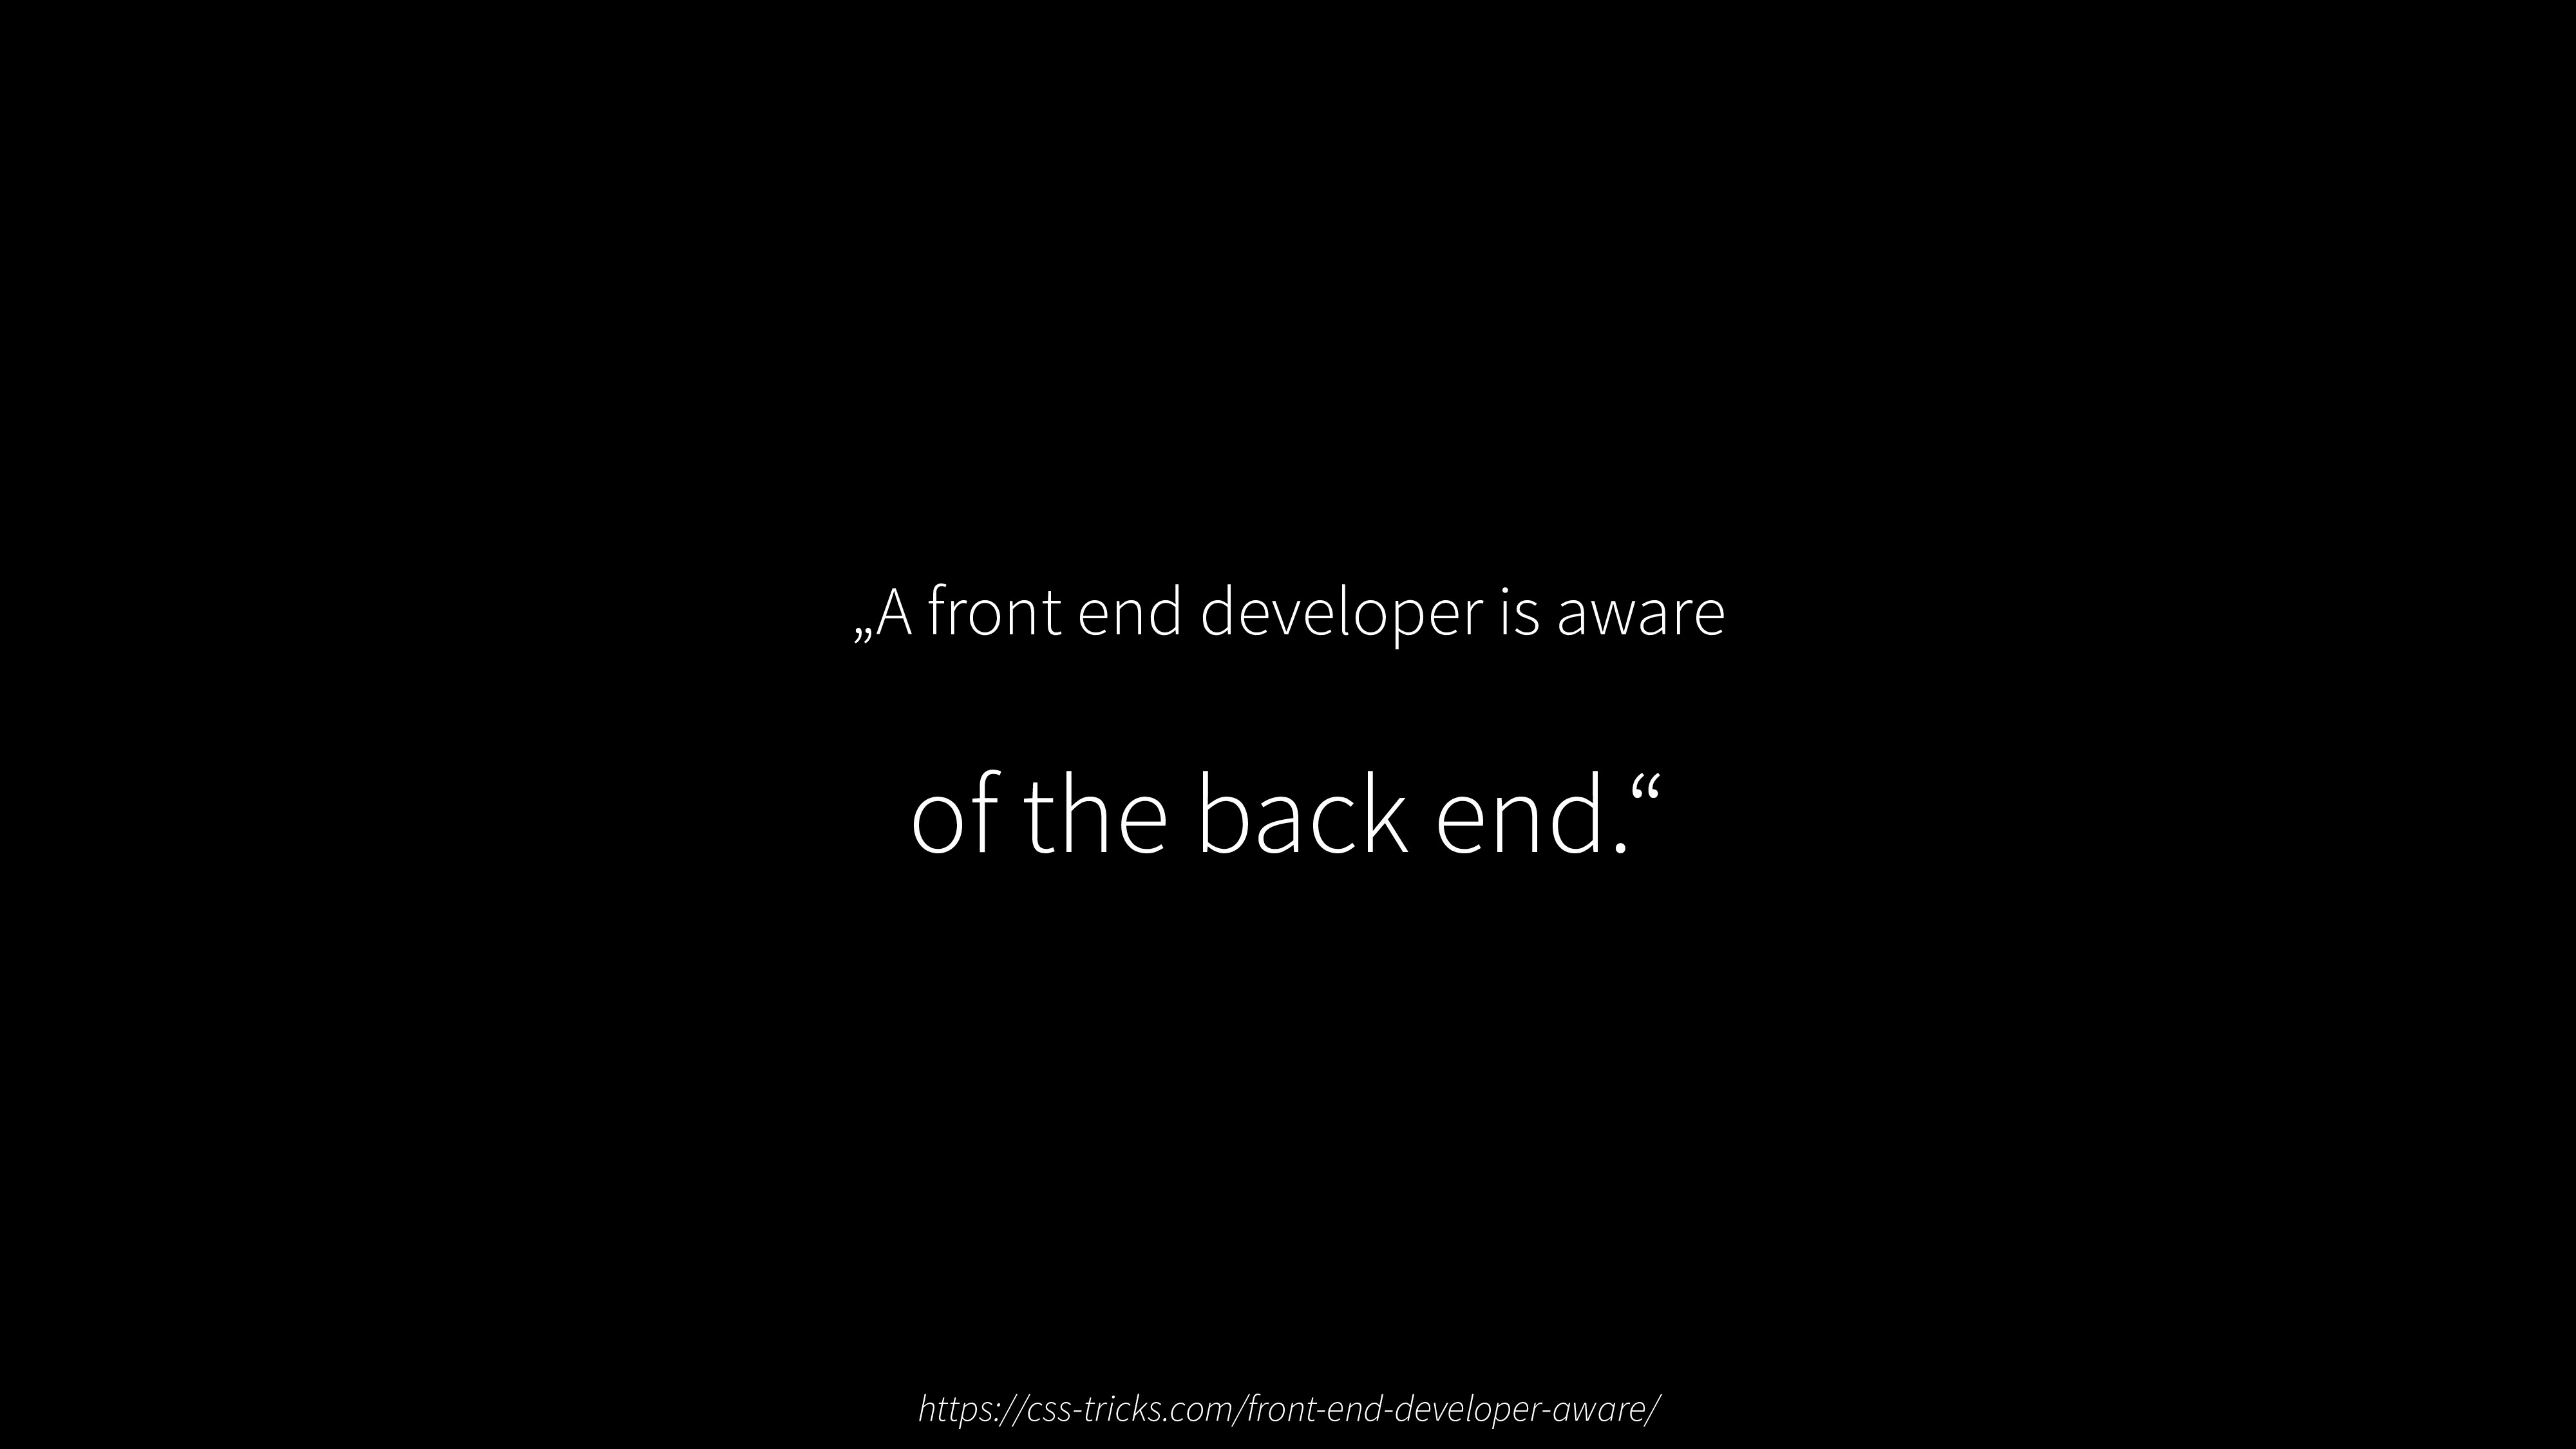 """A front end developer is aware of the back end..."